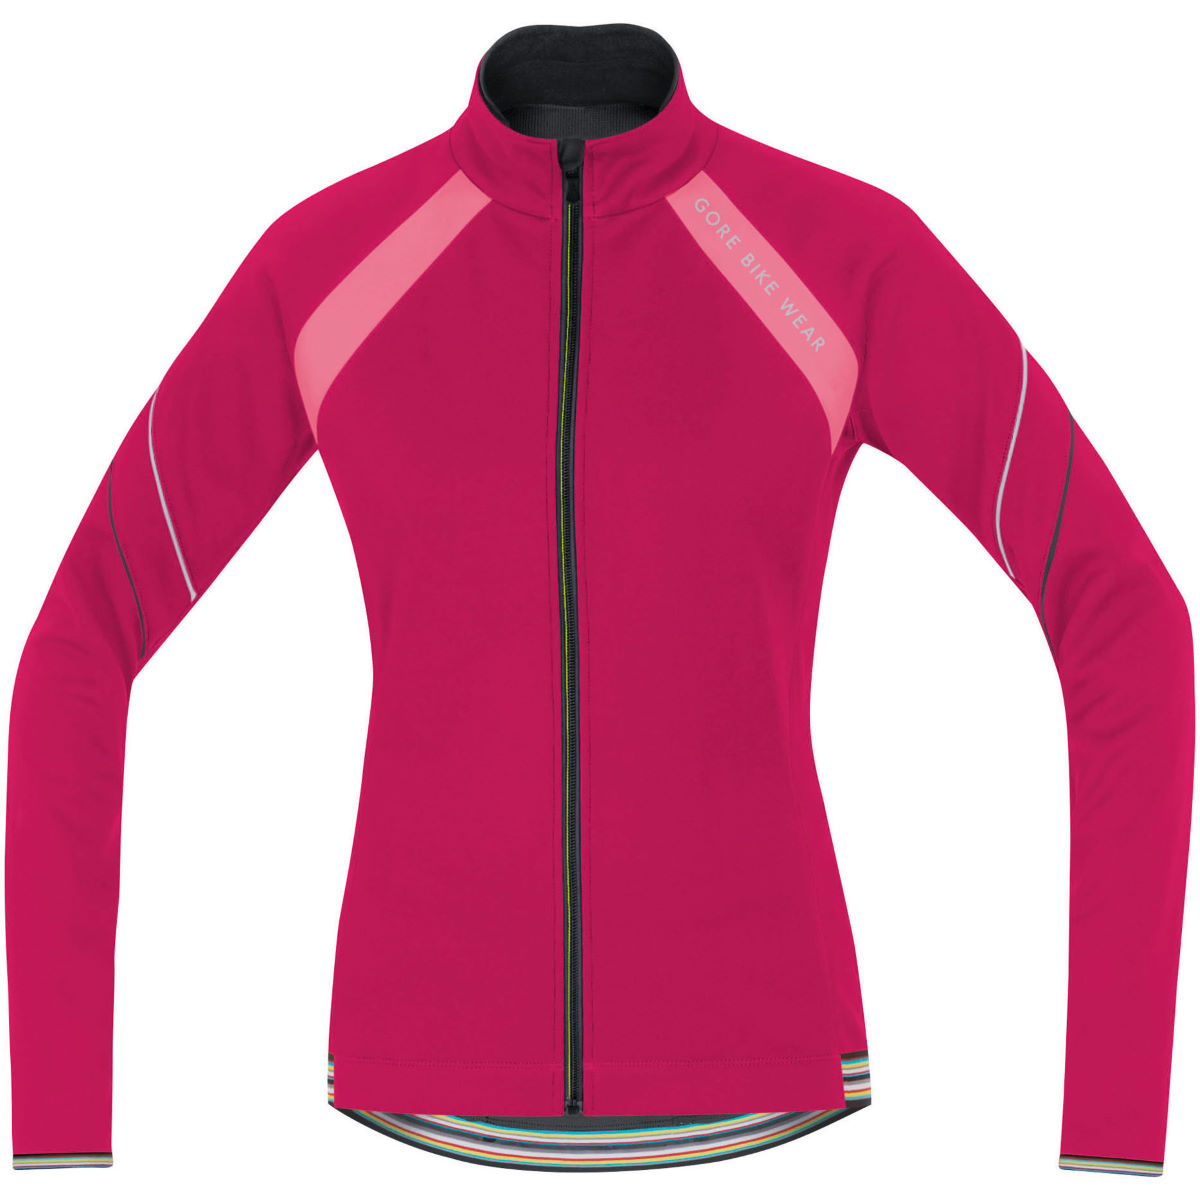 Gore Bike Wear Women's Power 2.0 Windstopper Softshell Jacket - Large